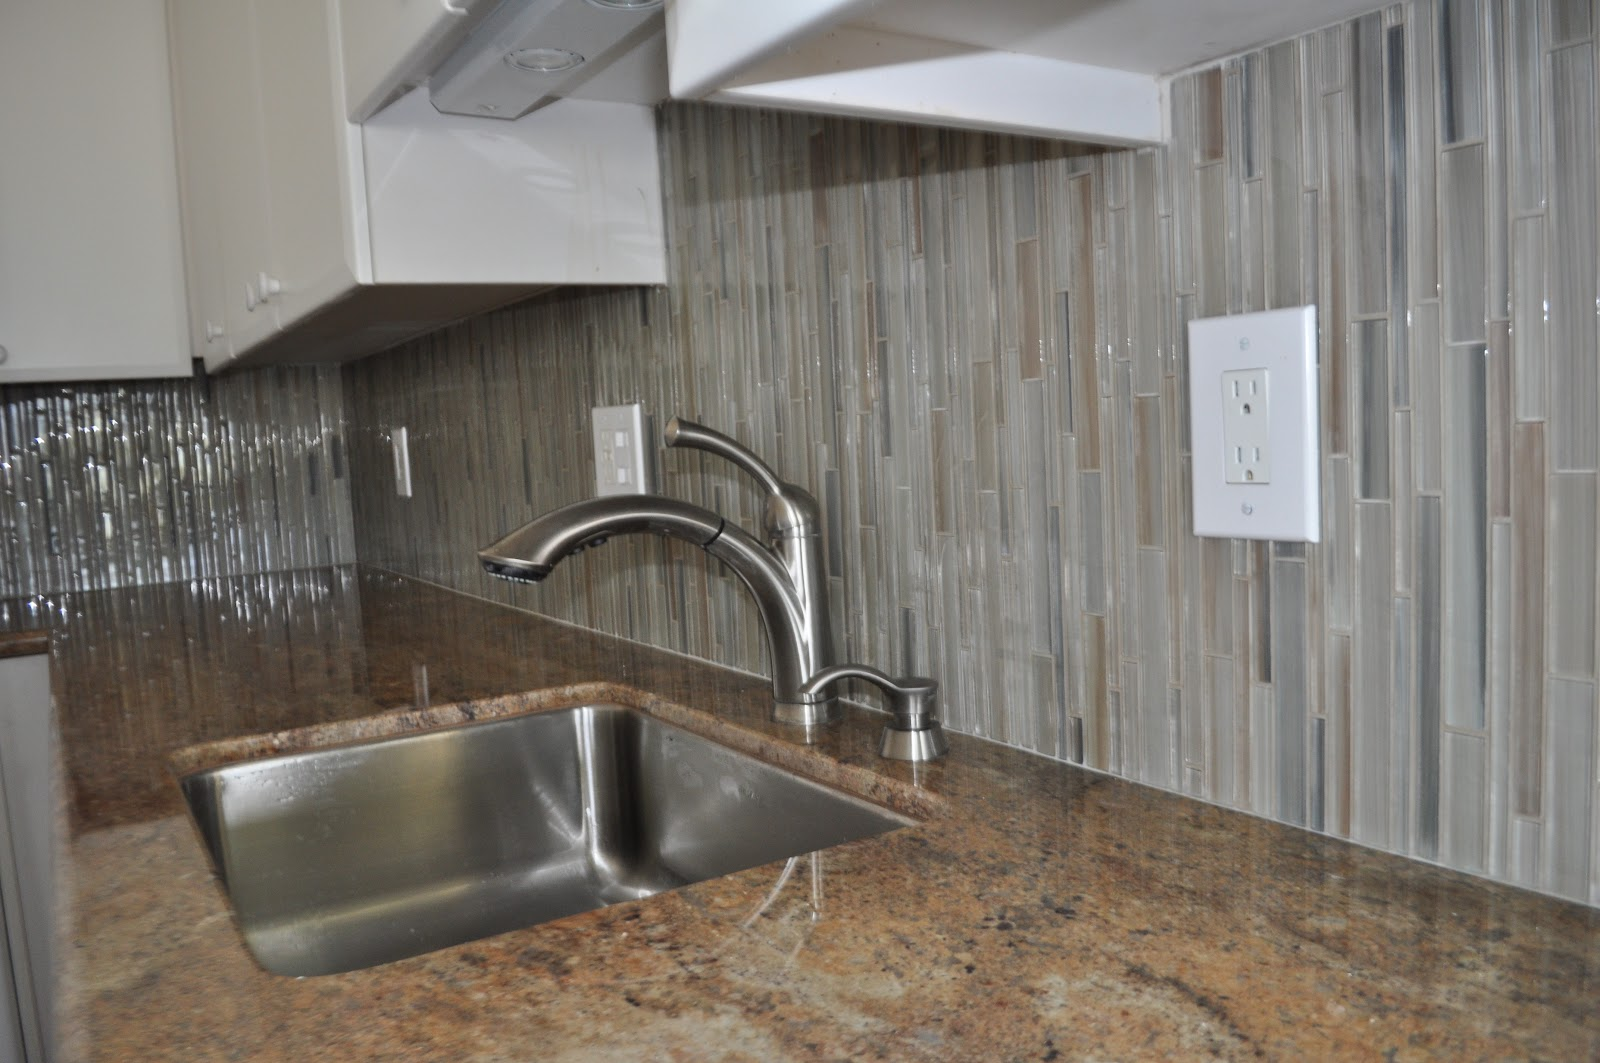 glass tile installations on maui glass tile backsplash kitchen North Kihei Bellavita Glass Tile Backsplash